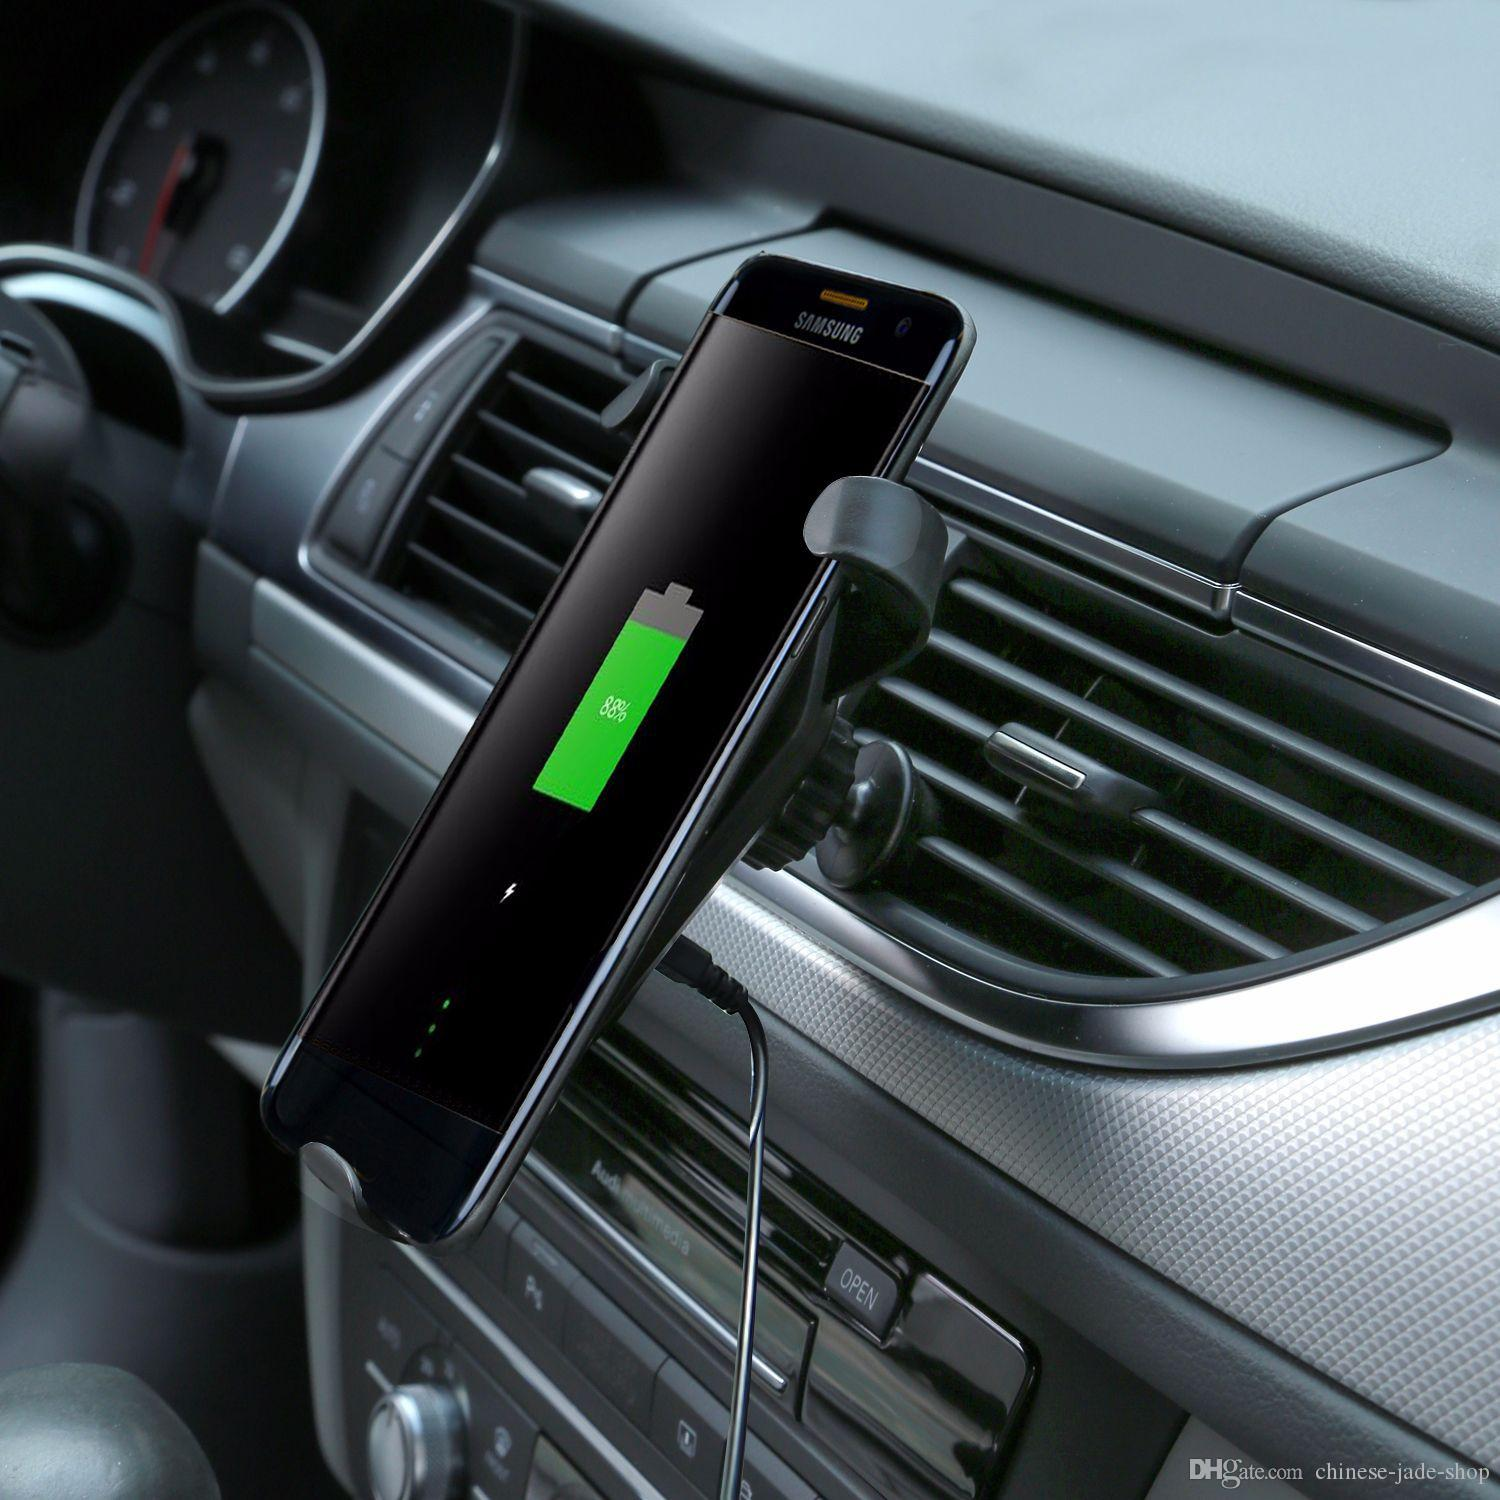 QI 9V Fast Wireless Caricabatterie Supporto da auto Supporto Air Vent Stand iPhone 8 X Samsung Galaxy S6 S7 S8 Plus IN REATIL /